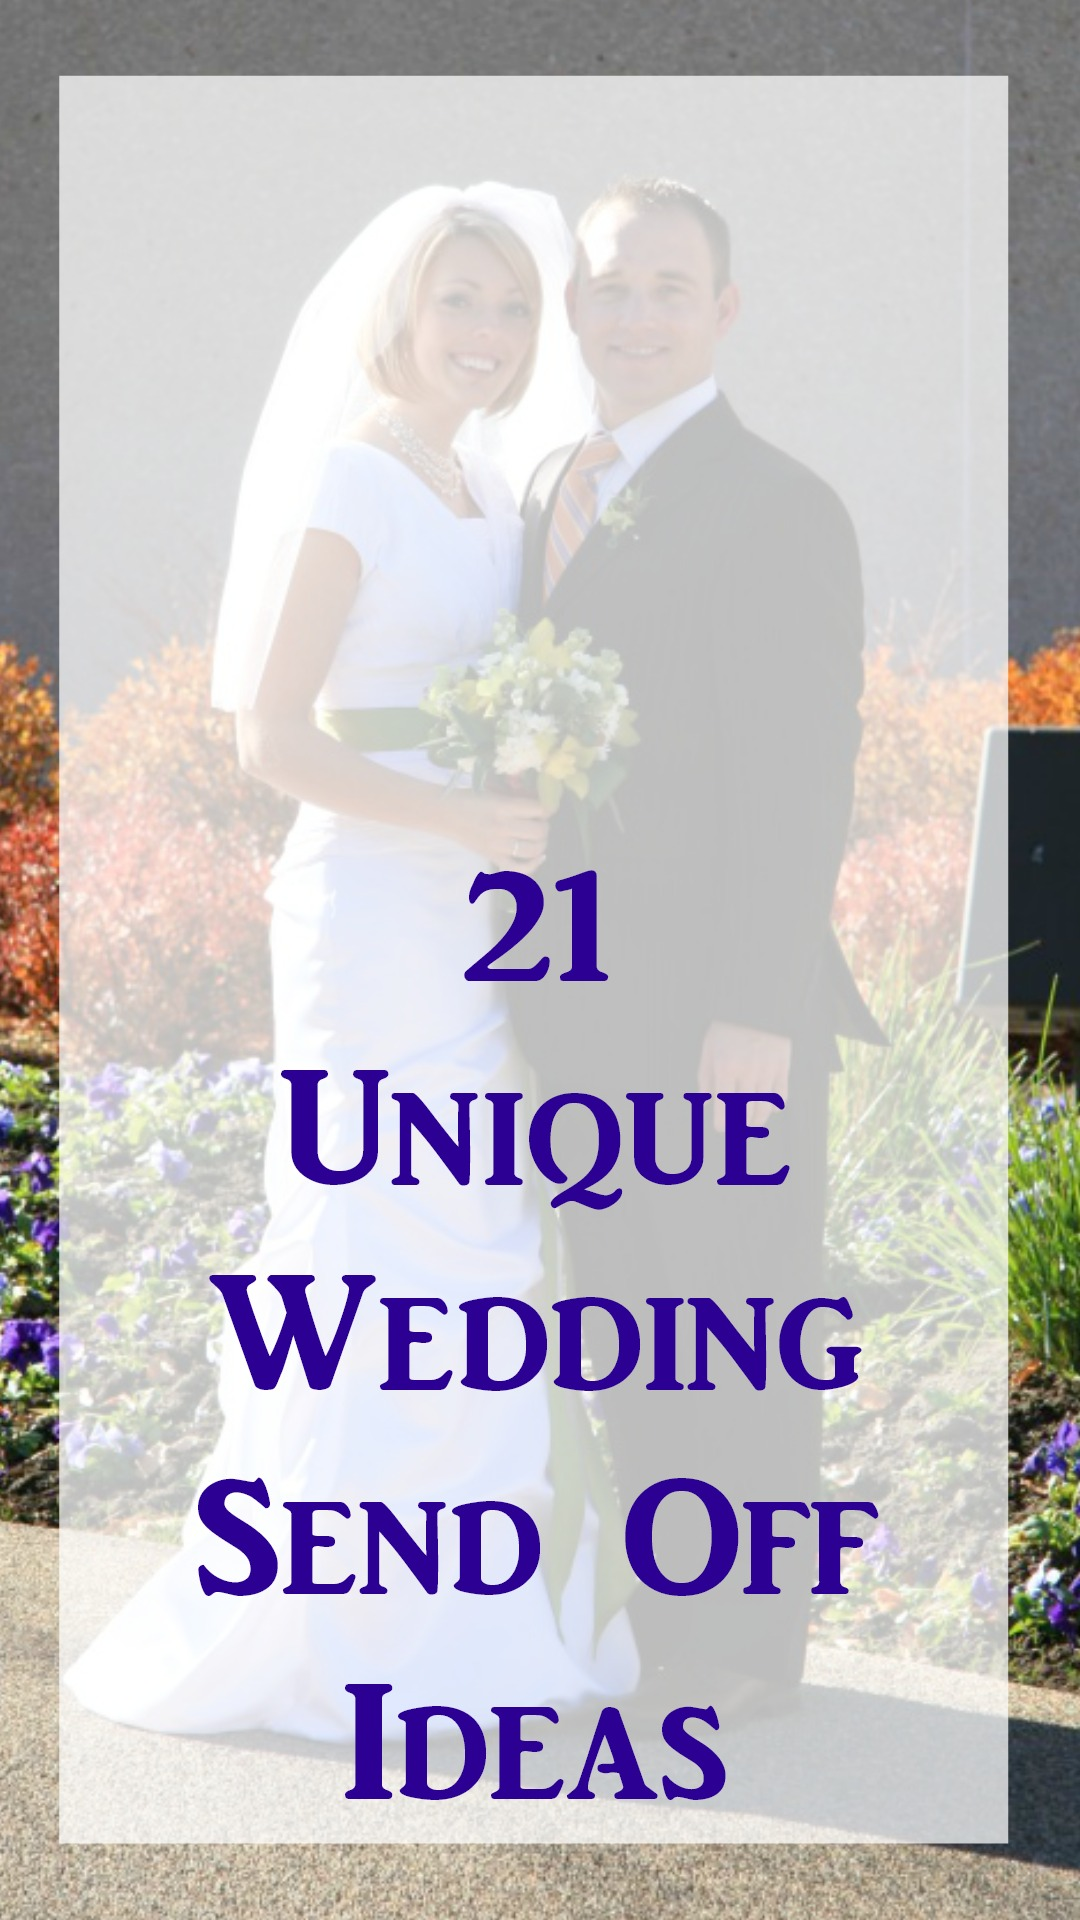 21 Unique Wedding Send Off Ideas - events to CELEBRATE!